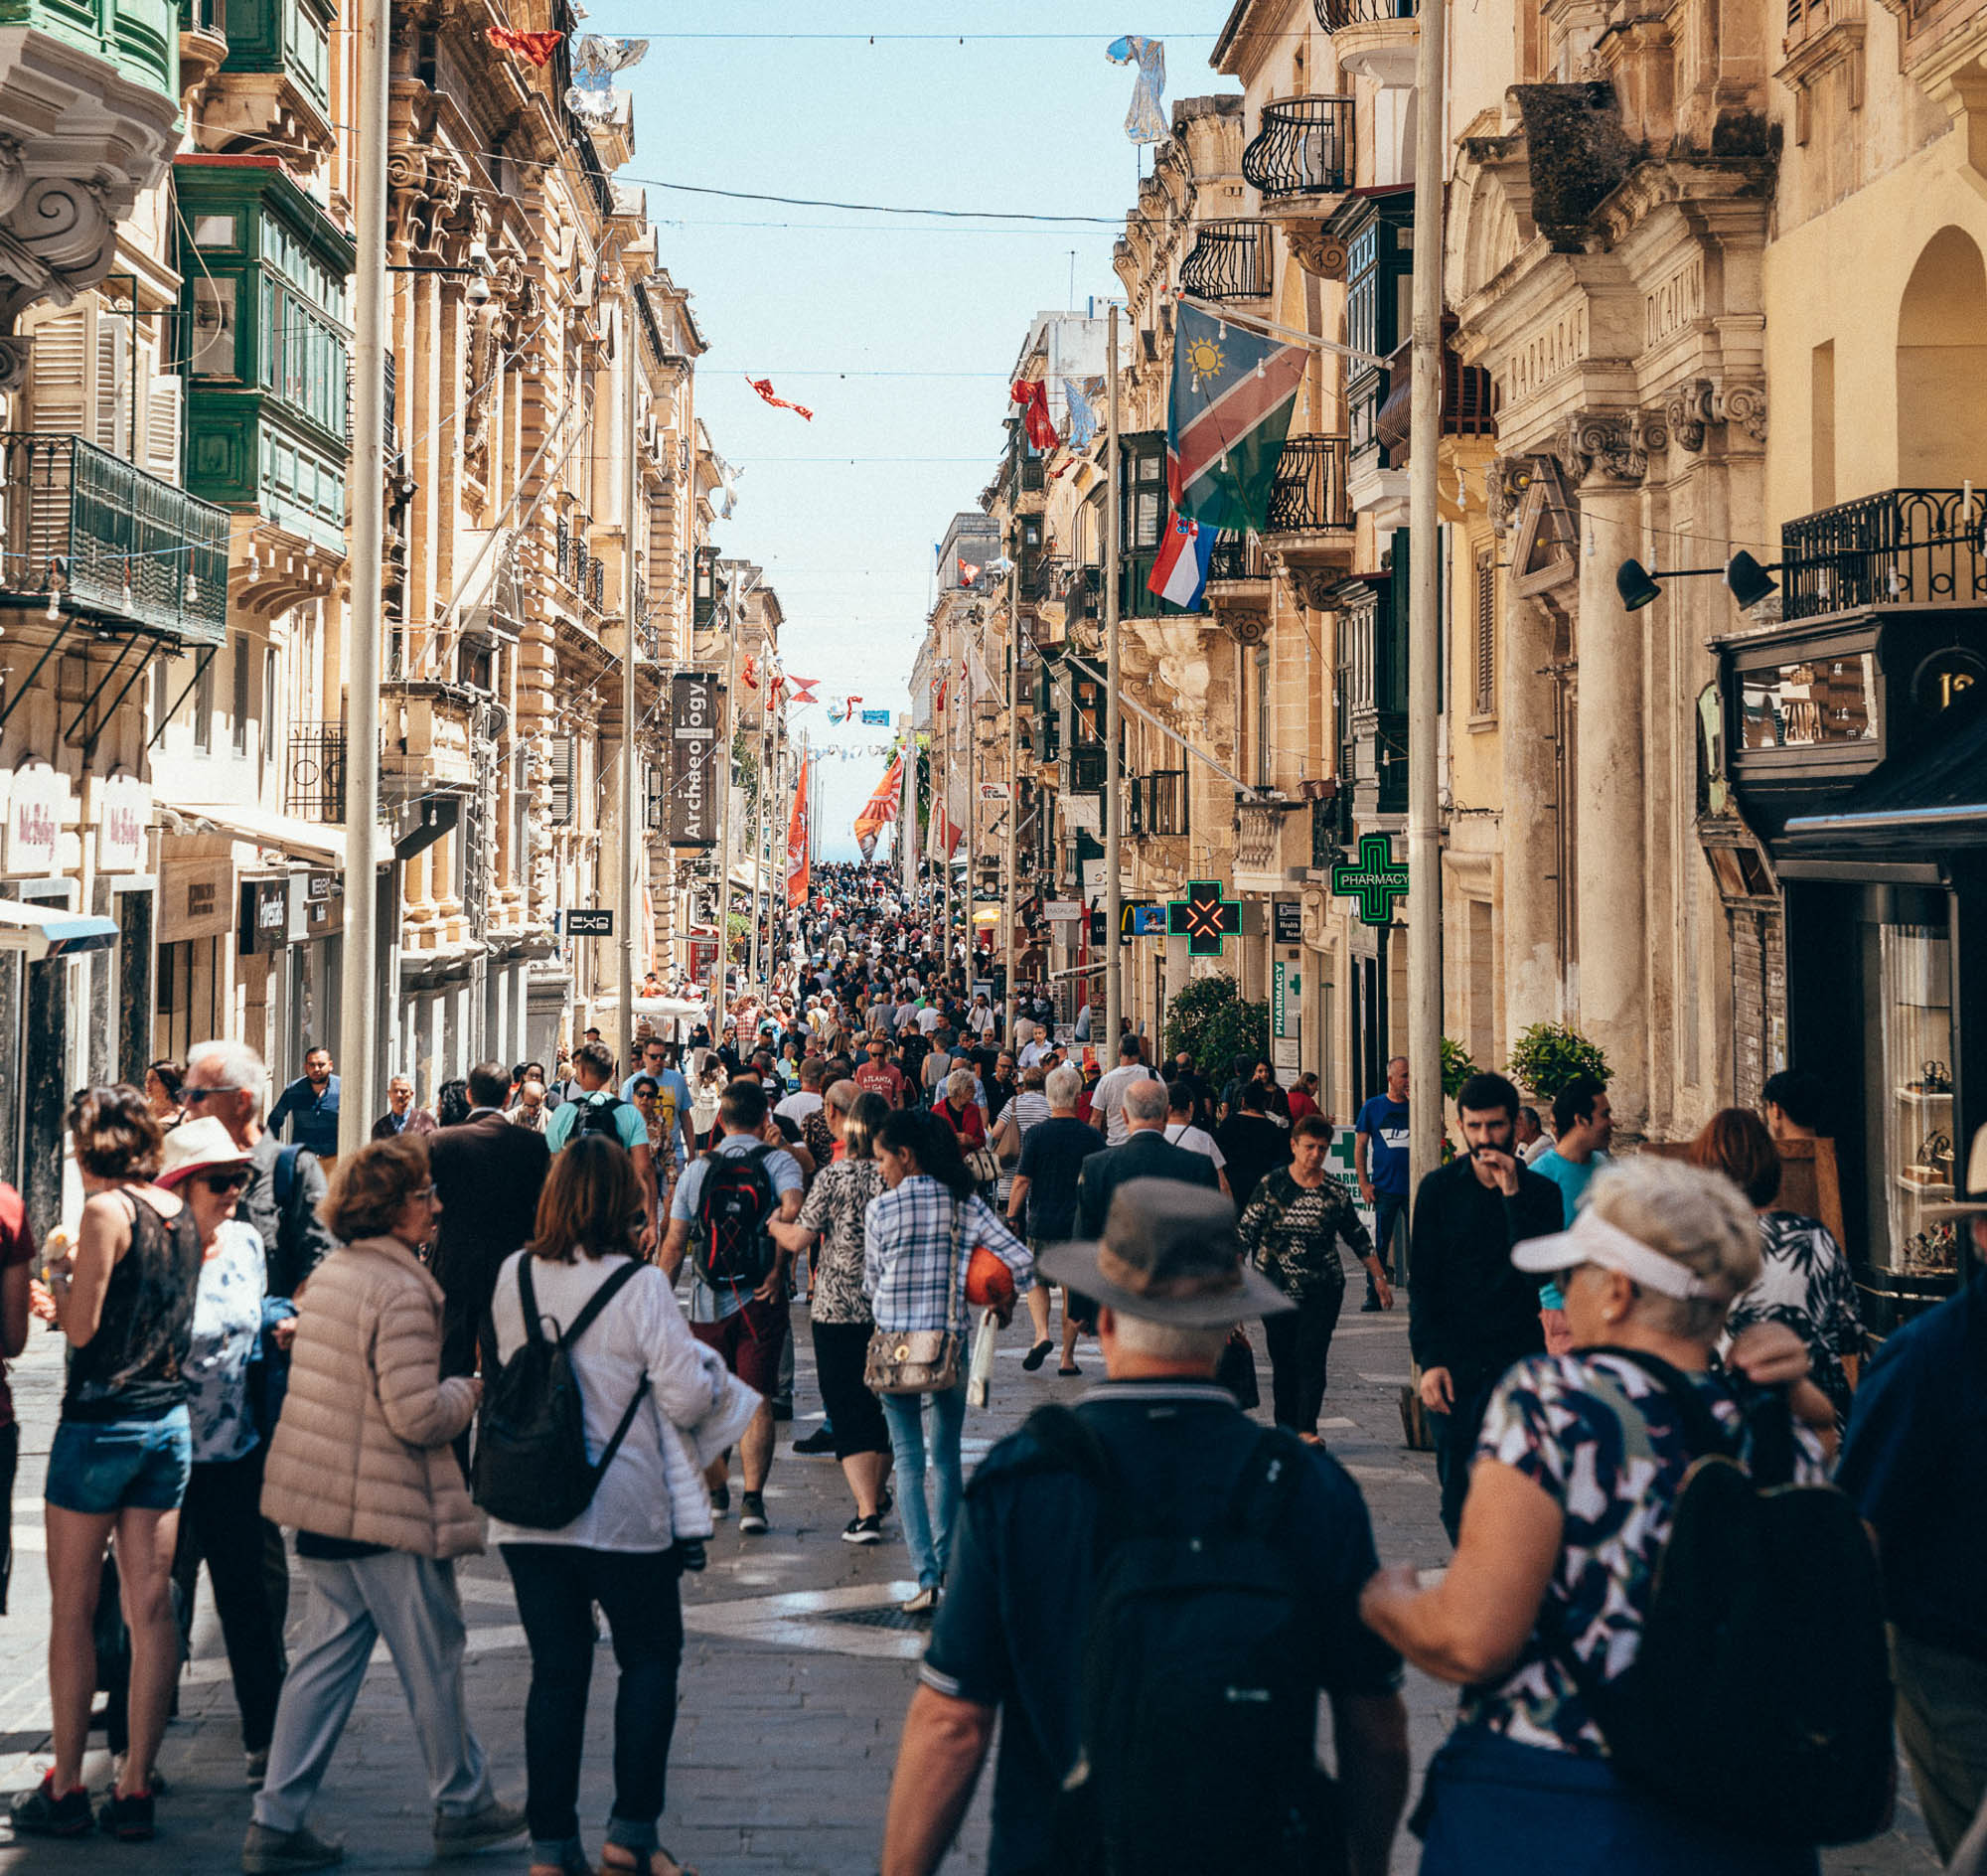 The Central street city of Valletta, the capital of Republic of Malta